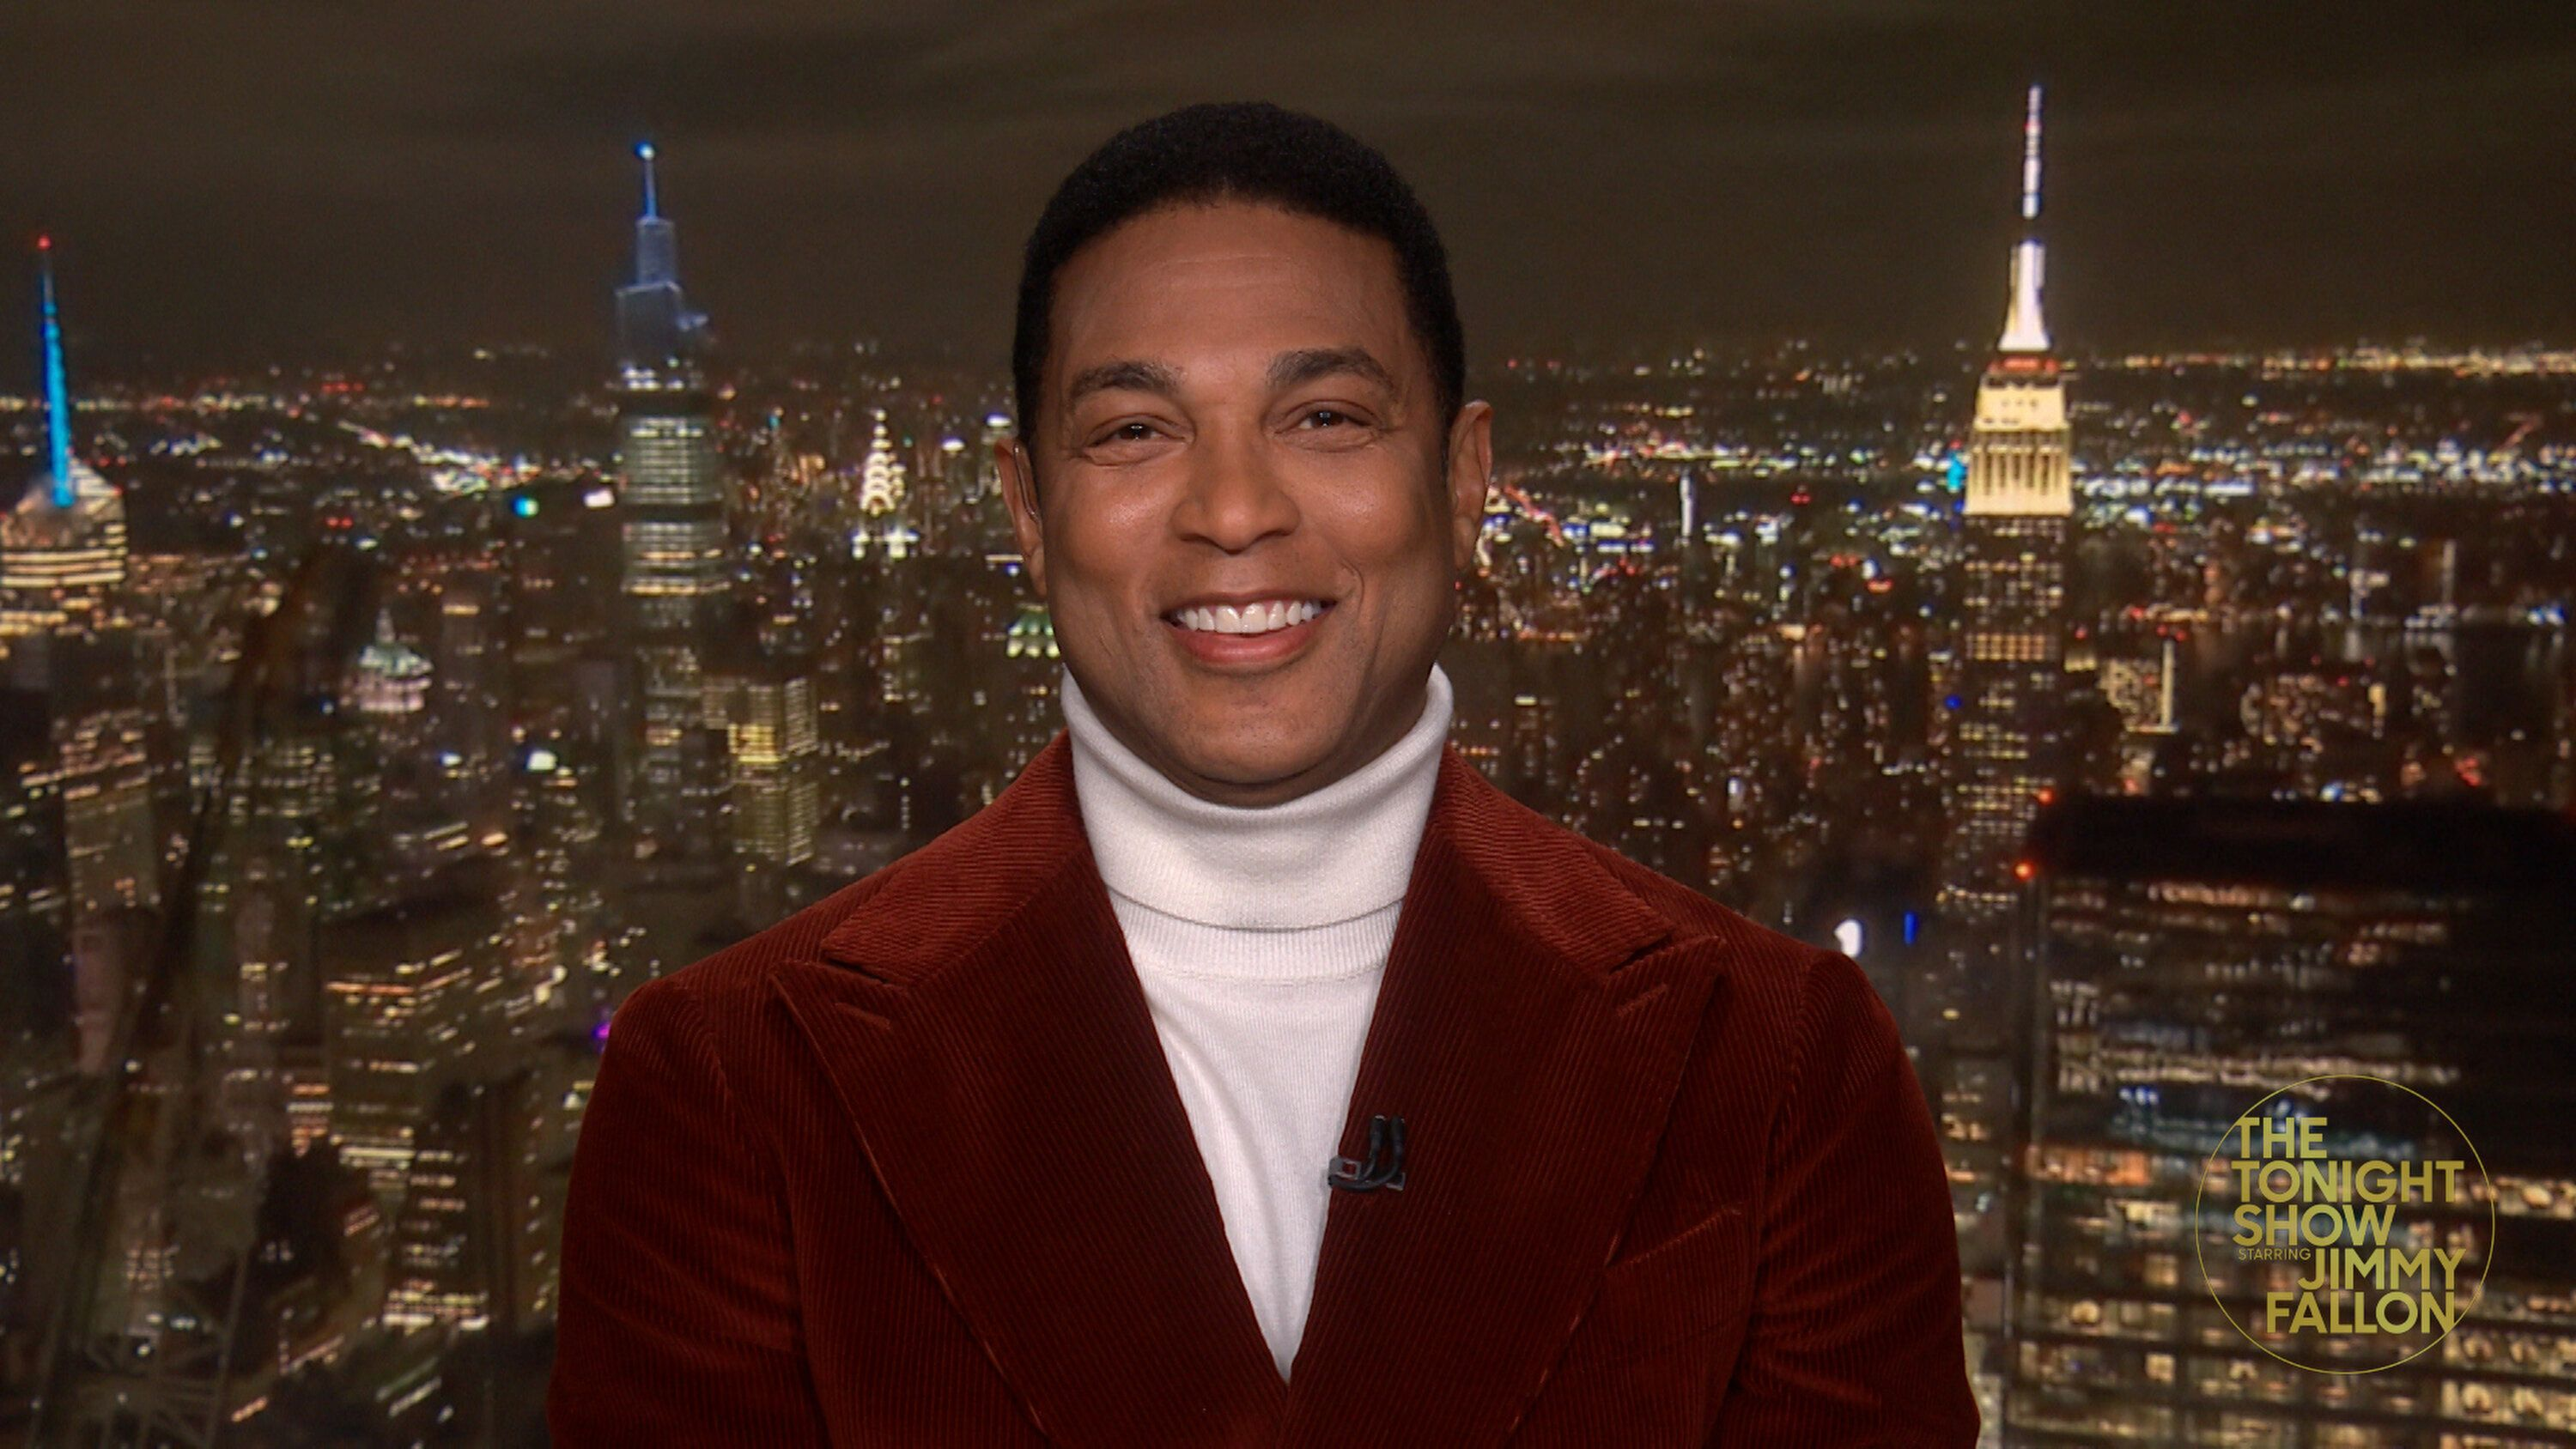 Don Lemon Teases 'End Of An Era' At CNN But It's 'Not What You Think'